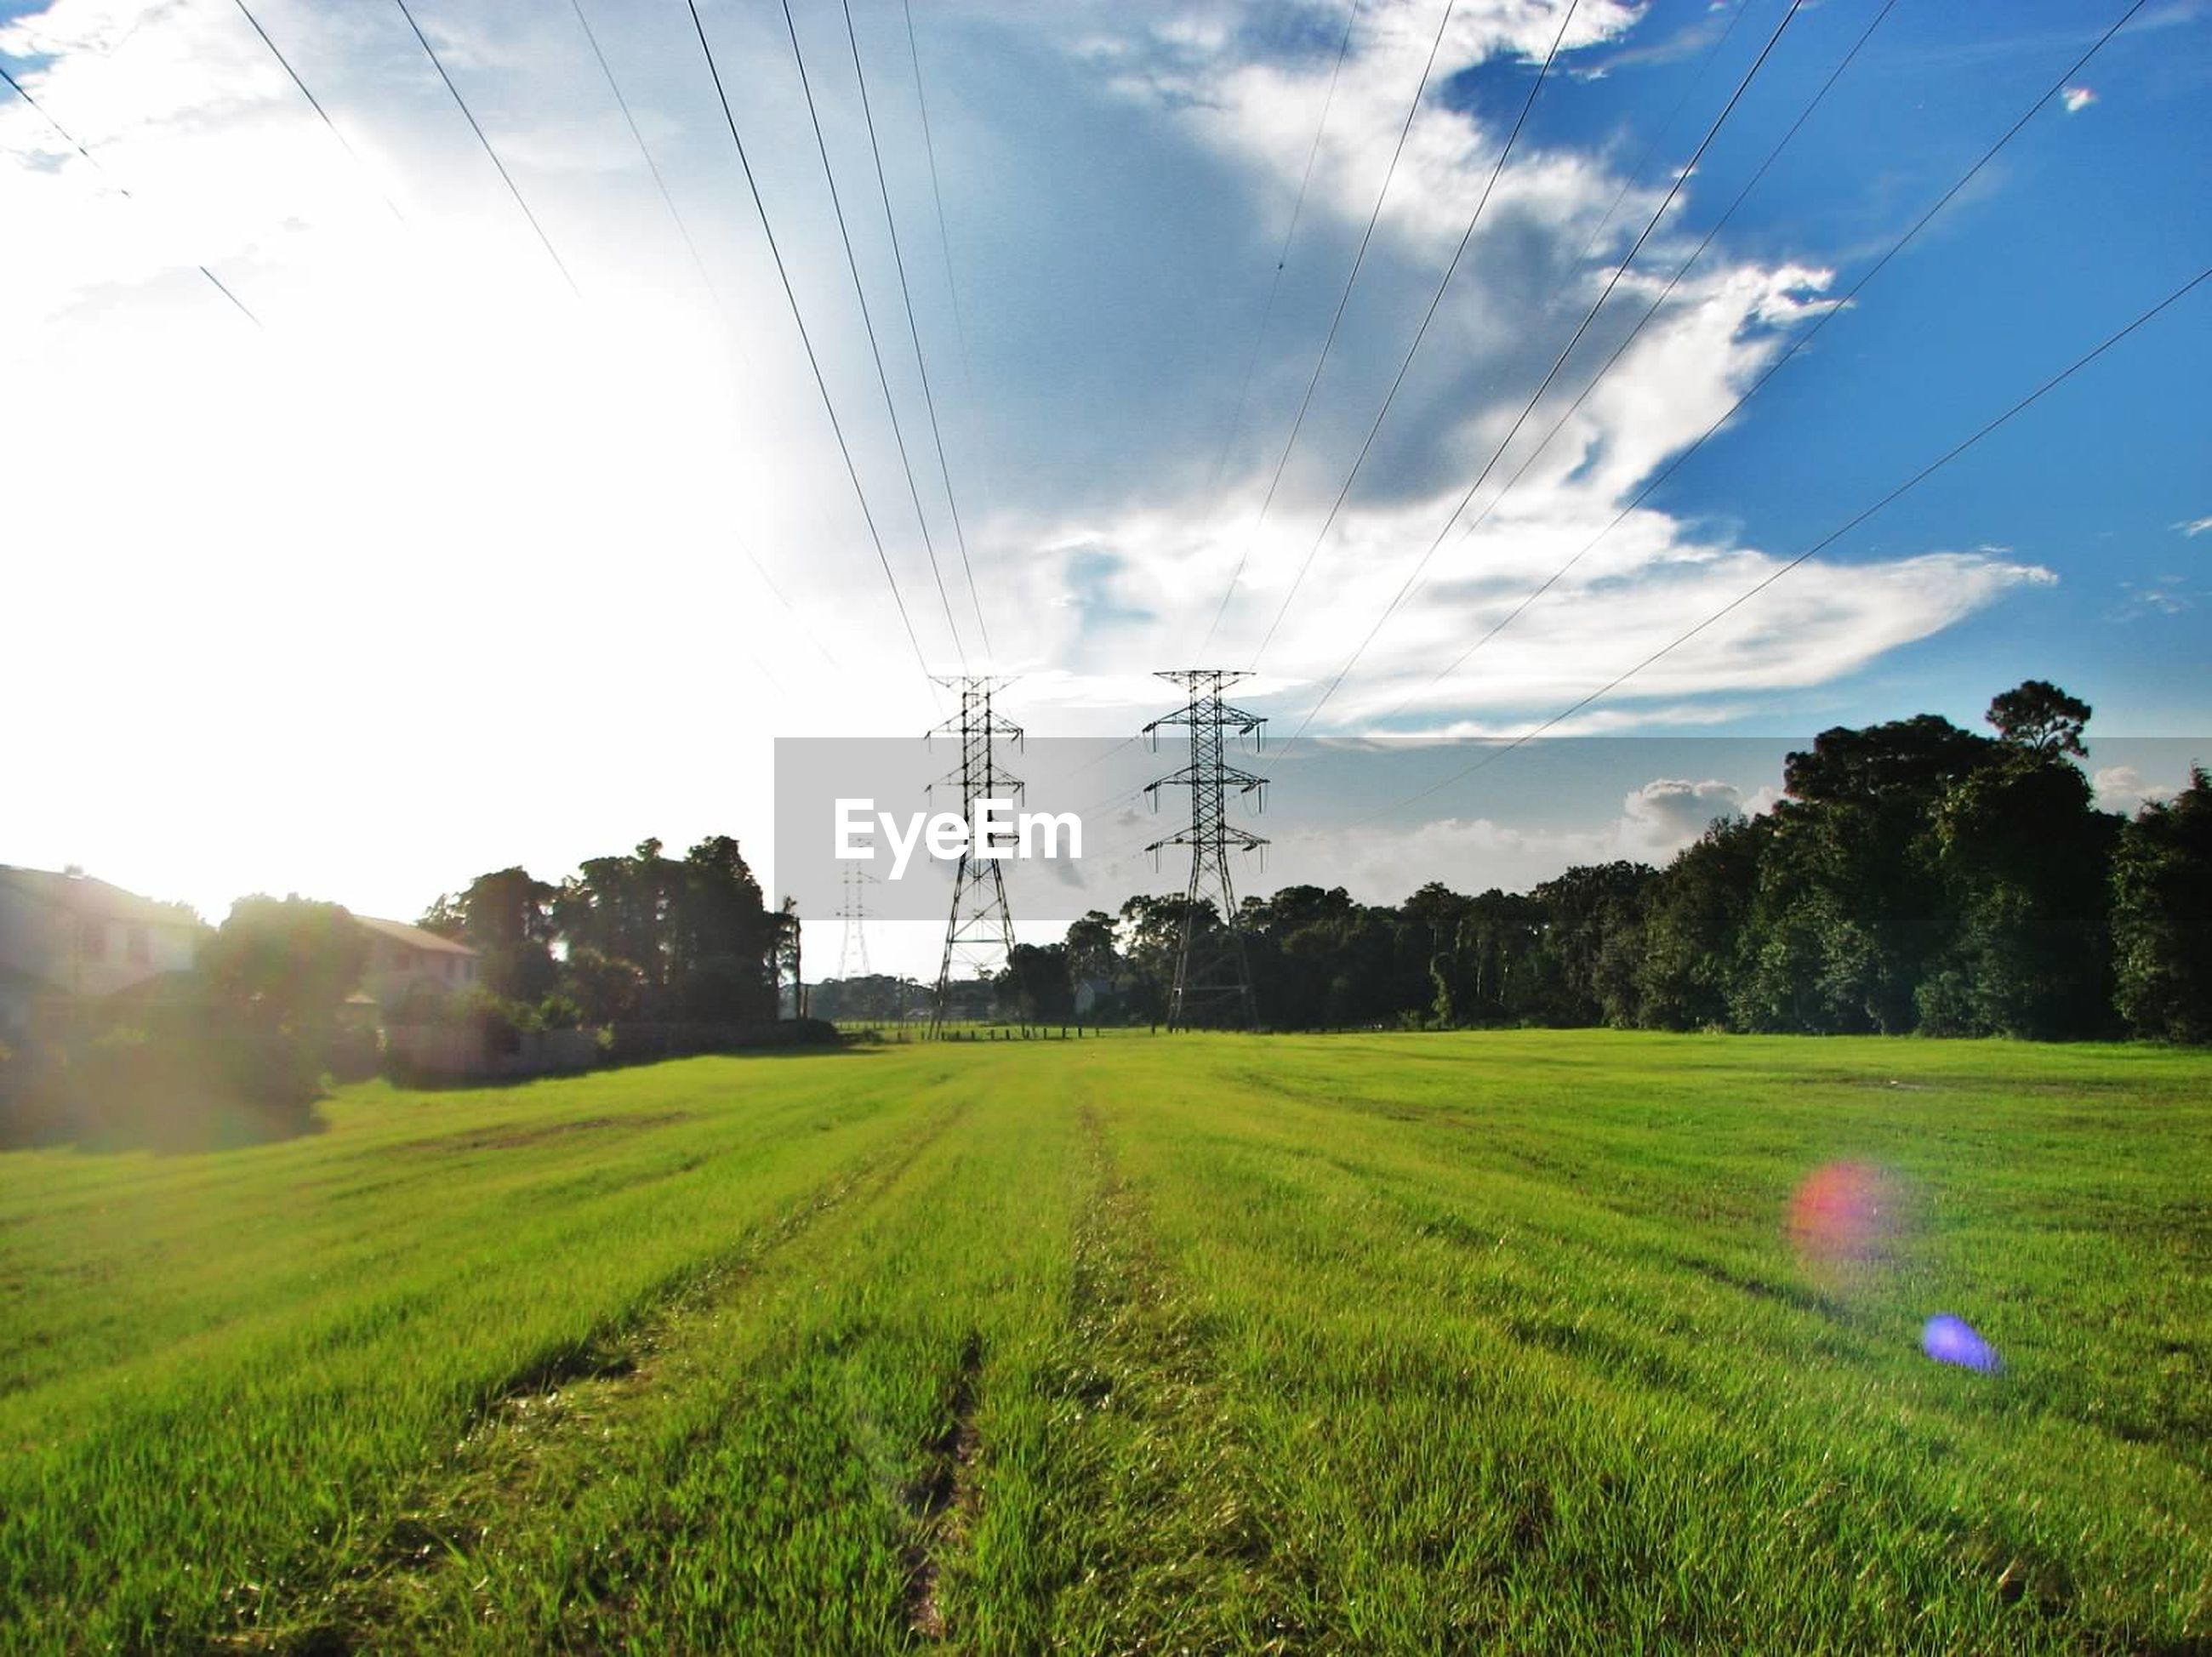 Electricity pylons on grassy field during sunny day